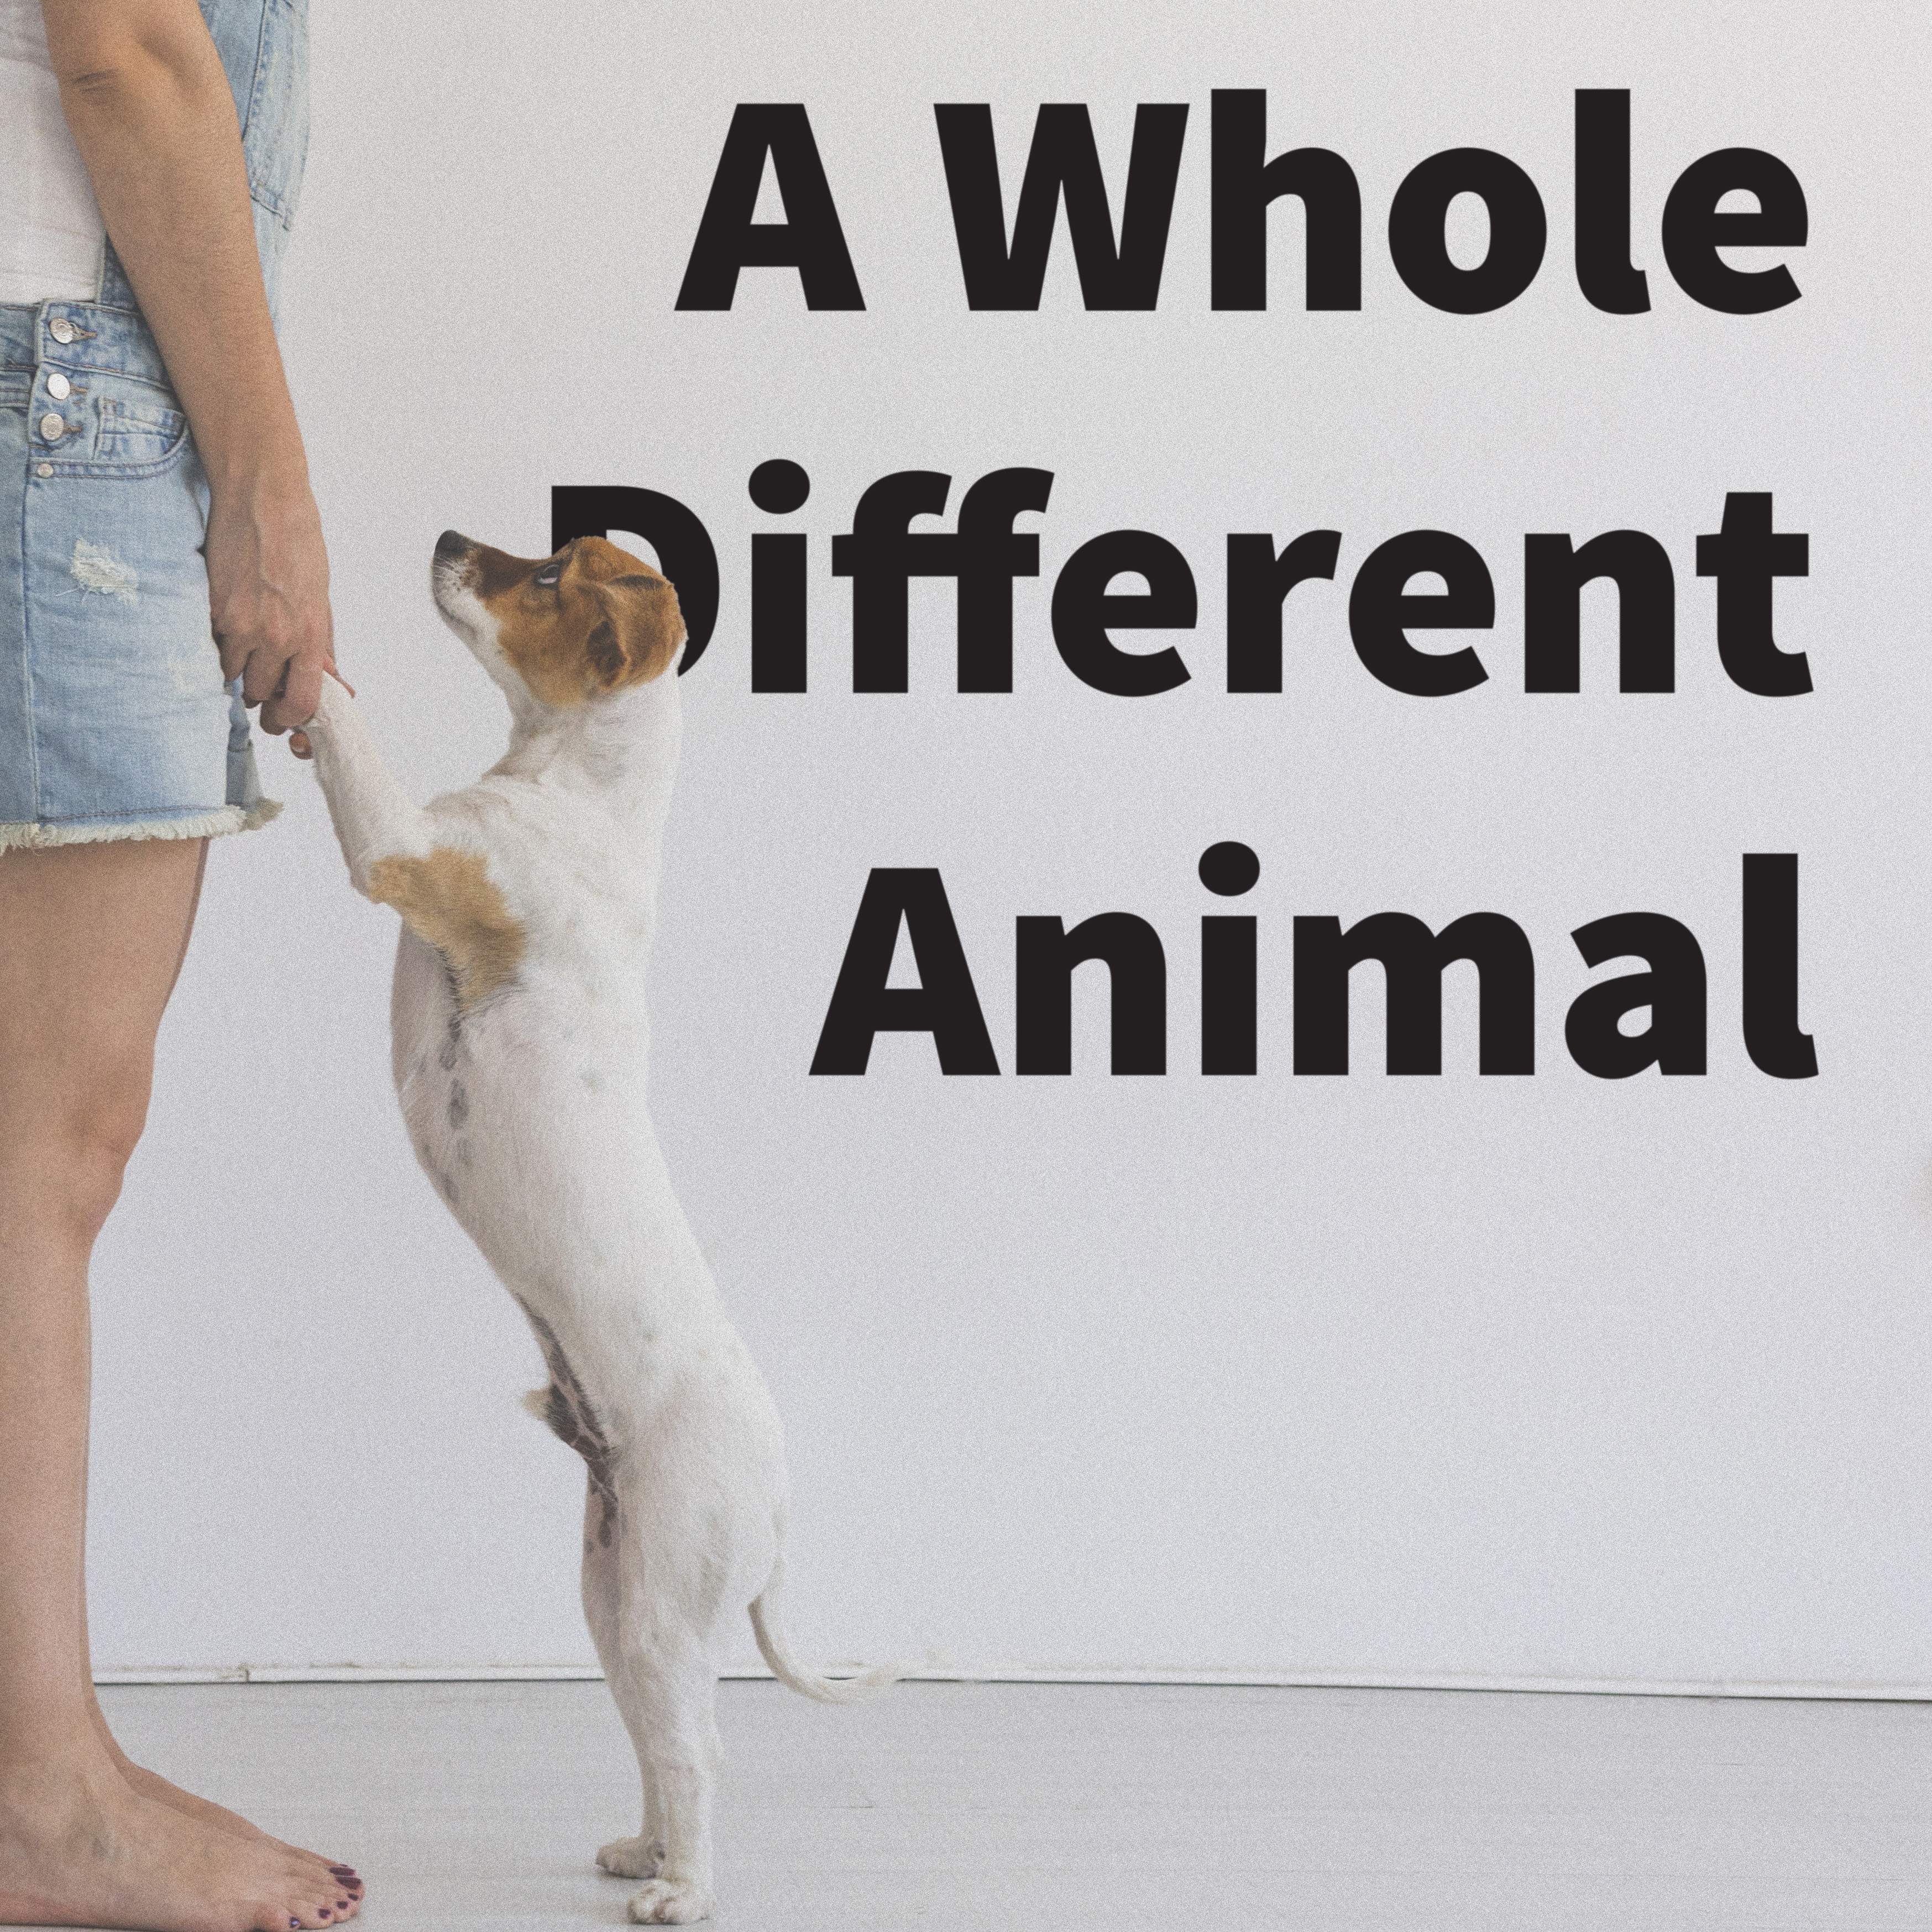 whole different animal blog.jpg